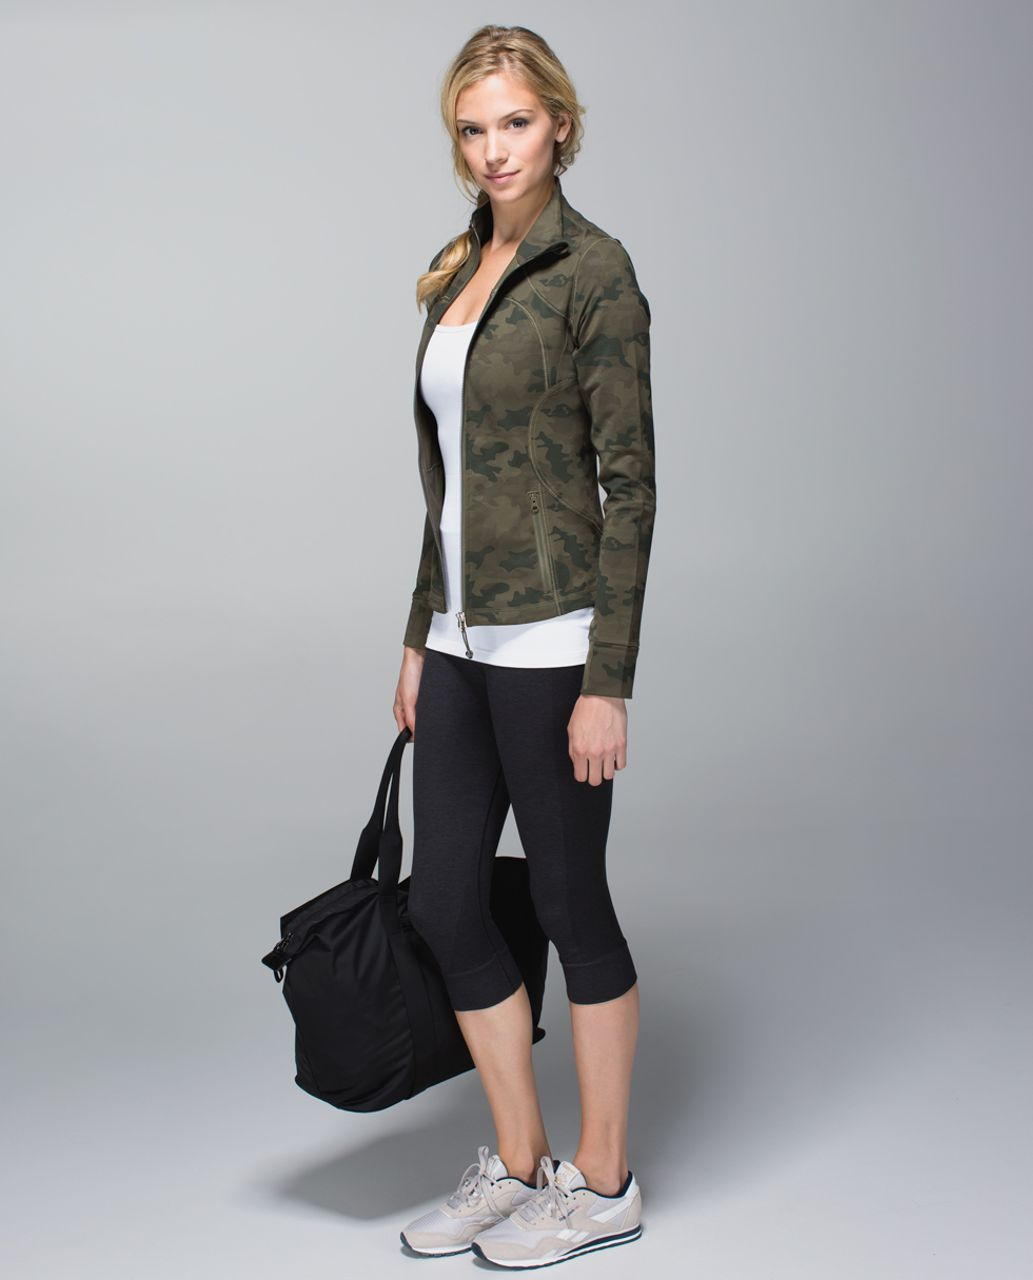 Lululemon Forme Jacket *Cuffins - Savasana Camo 20cm Fatigue Green